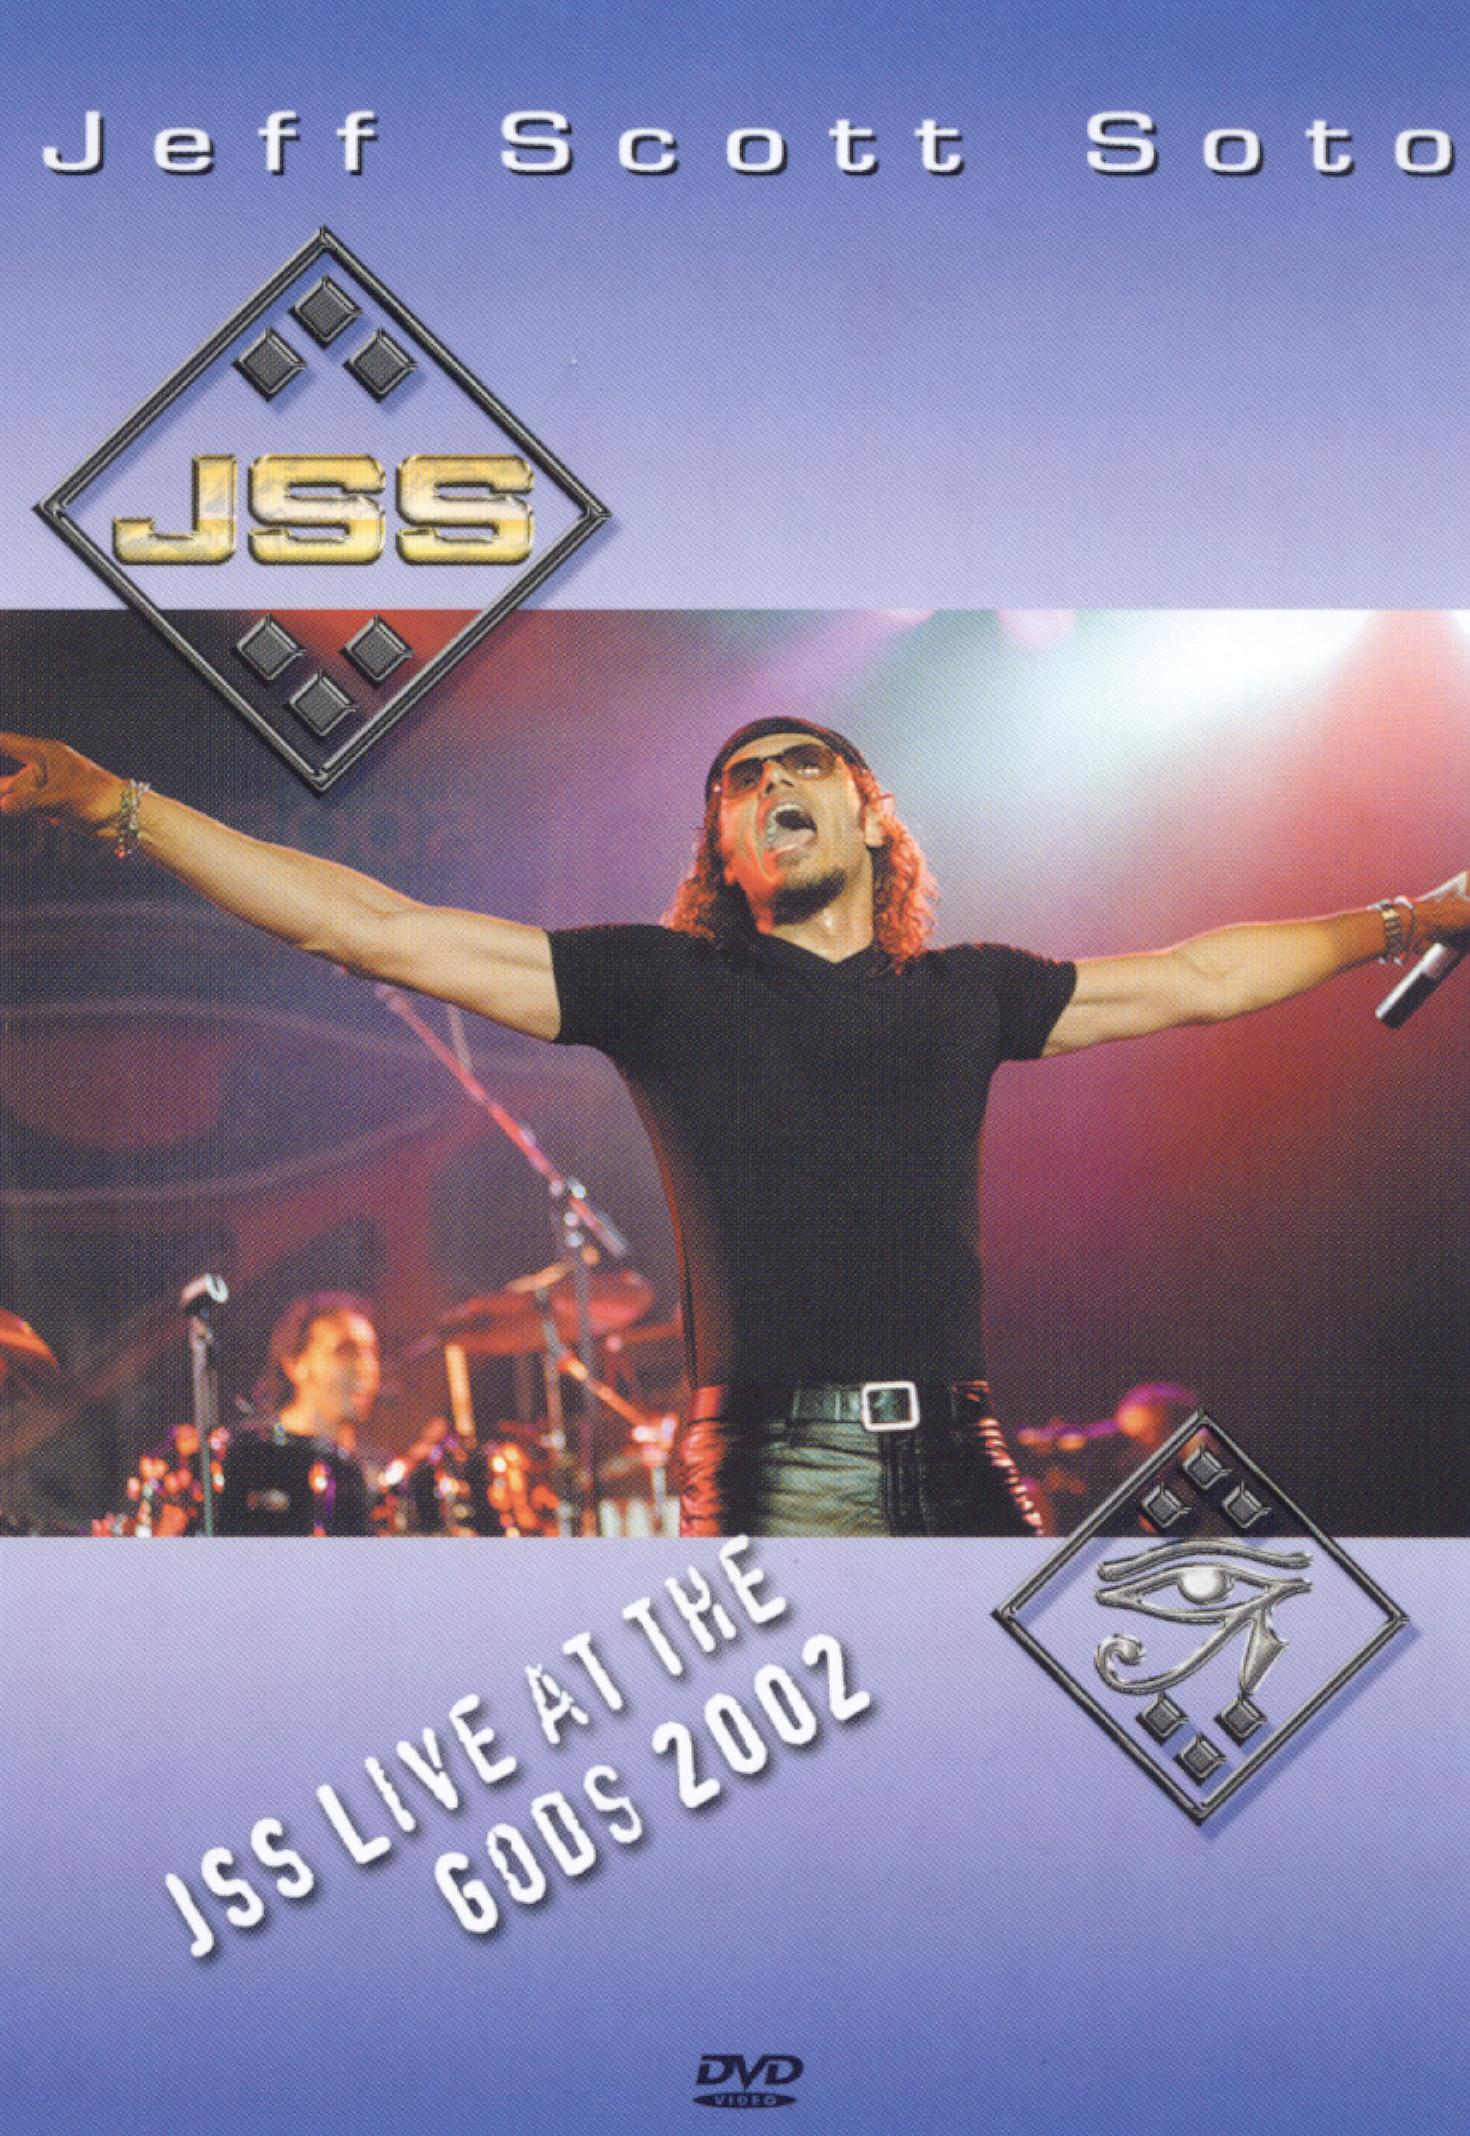 Jeff Scott Soto: JSS Live at the Gods 2002